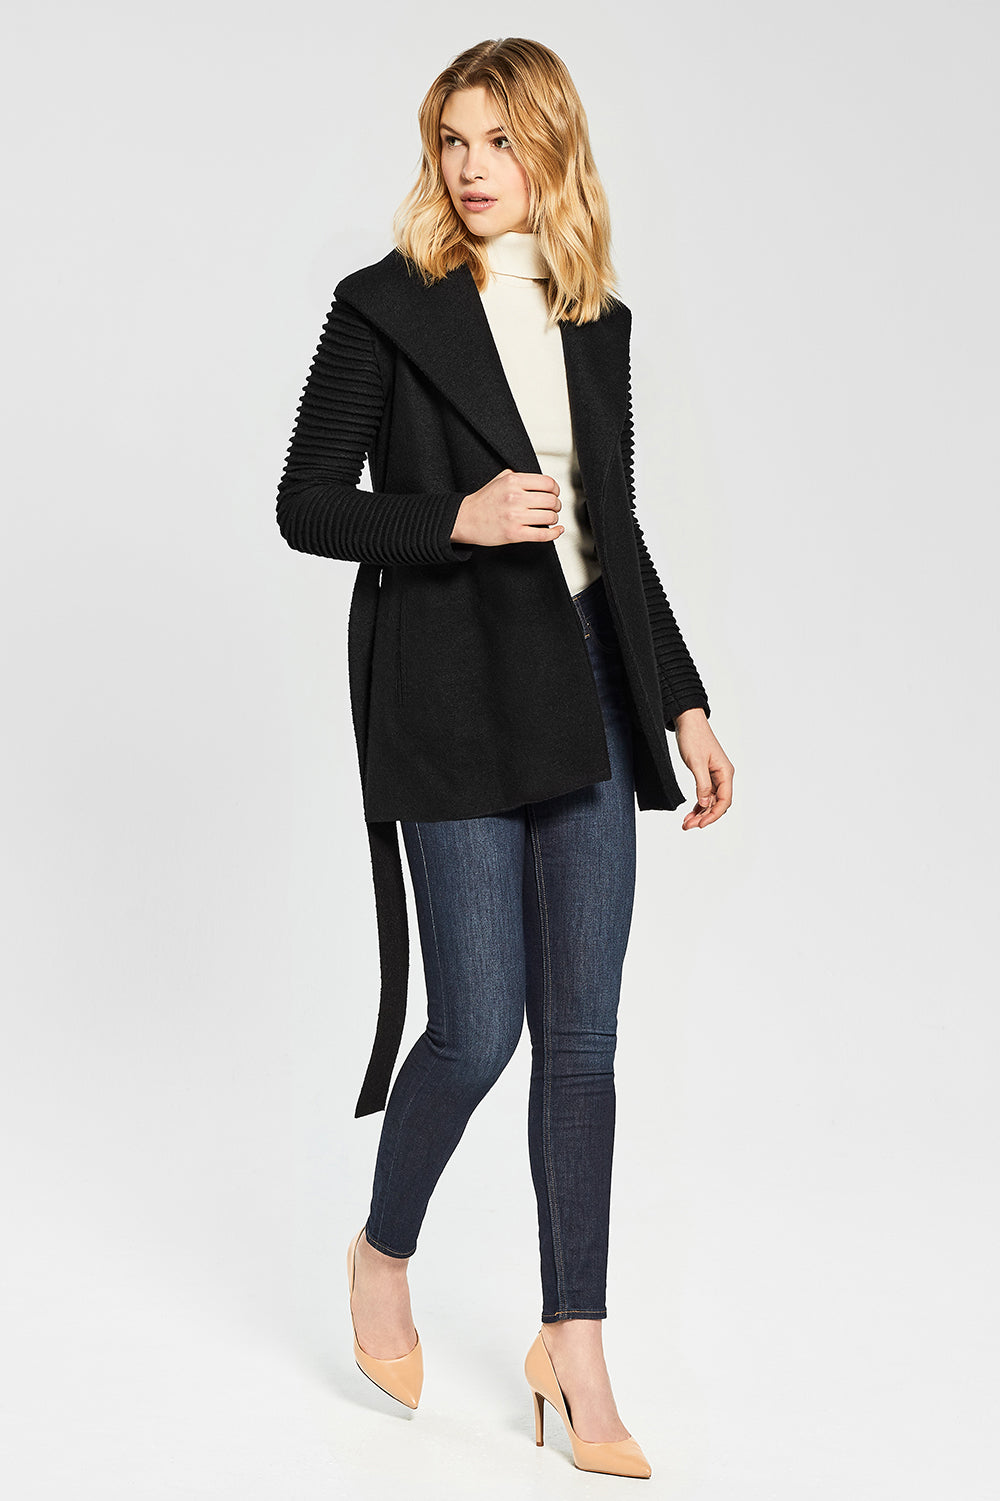 Sentaler Wrap Coat with Ribbed Sleeves featured in Superfine Alpaca and available in Black. Seen Open.